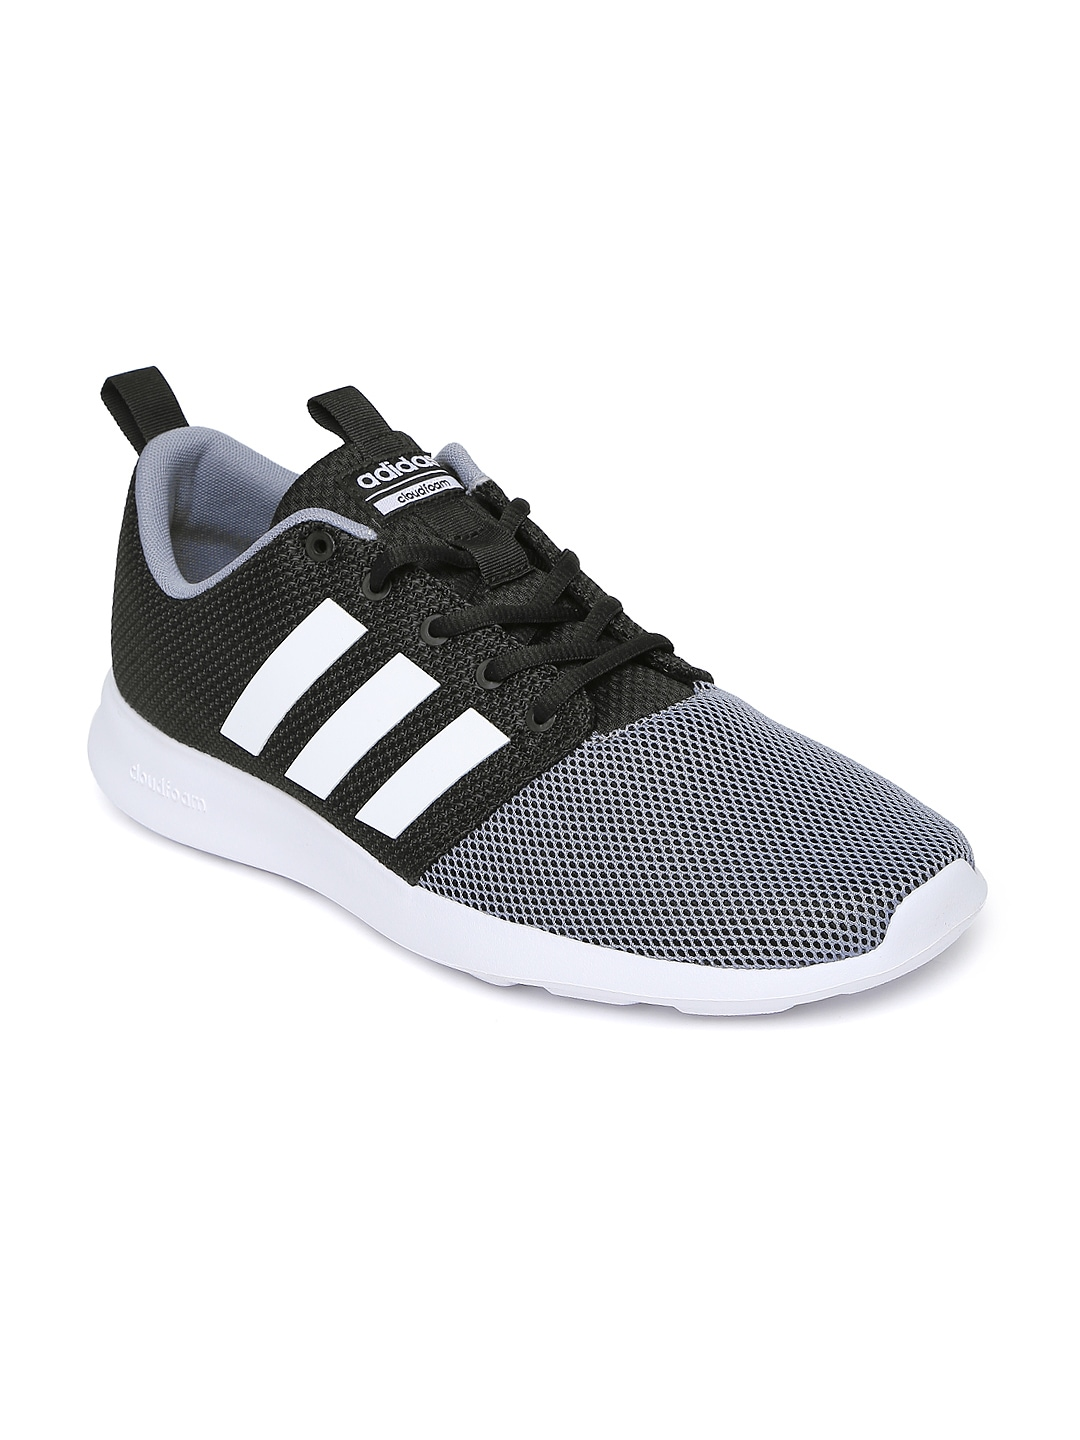 d12c5ad9ed8a3 Adidas aw4159 Neo Men Black And Grey Colourblocked Cloudfoam Swift Racer  Sneakers- Price in India